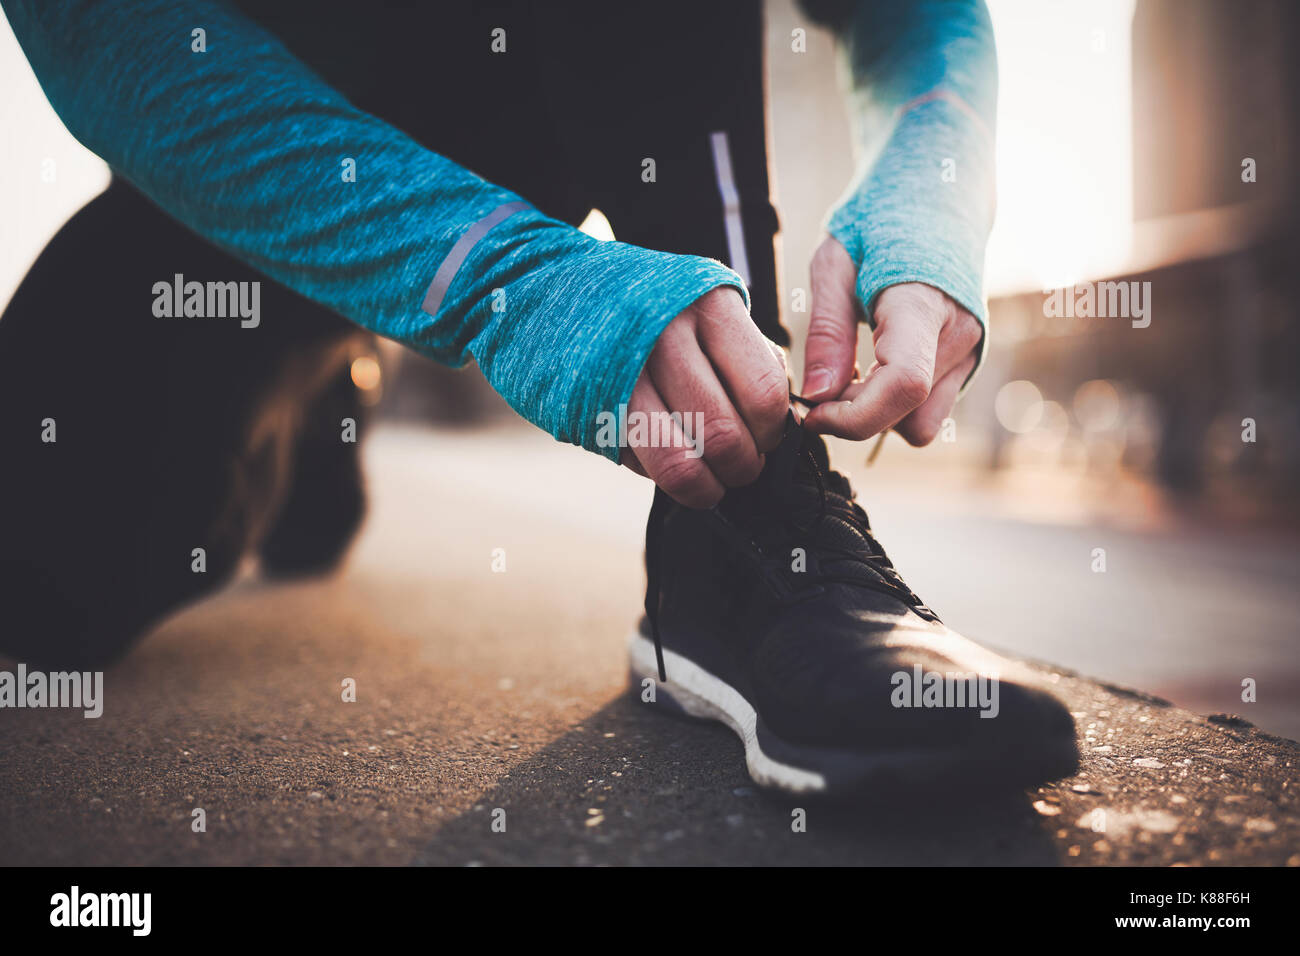 Jogging and running are fitness recreations - Stock Image